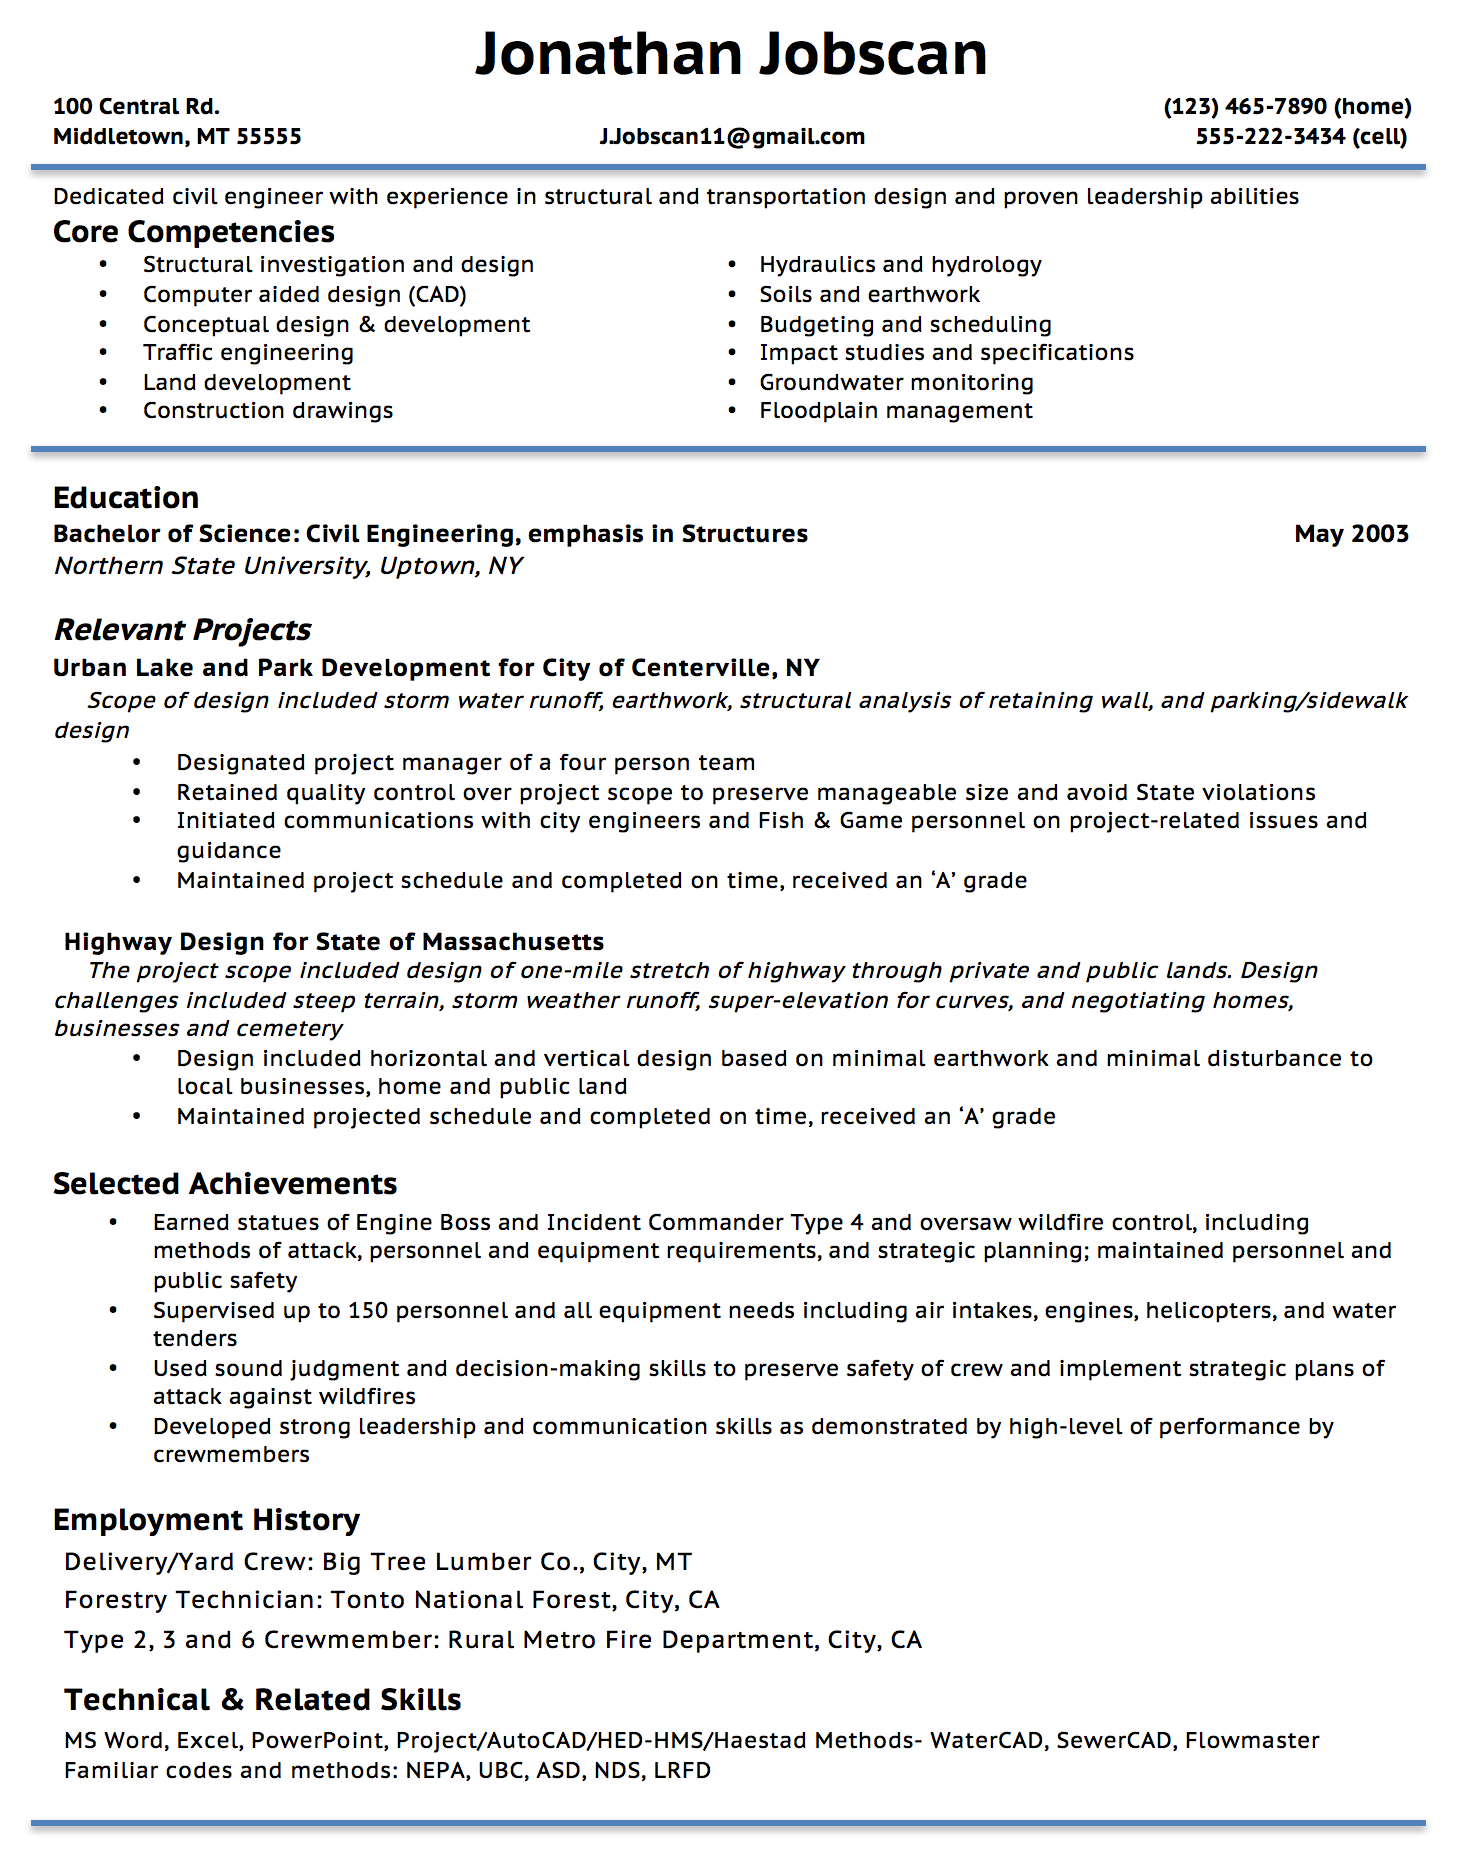 Opposenewapstandardsus  Terrific Resume Writing Guide  Jobscan With Gorgeous Example Of A Functional Resume Format With Astounding Resume Cover Sheets Also House Cleaner Resume In Addition Sample Of Resume Summary And Sample Of Customer Service Resume As Well As Resume For On Campus Jobs Additionally Ladders Resume From Jobscanco With Opposenewapstandardsus  Gorgeous Resume Writing Guide  Jobscan With Astounding Example Of A Functional Resume Format And Terrific Resume Cover Sheets Also House Cleaner Resume In Addition Sample Of Resume Summary From Jobscanco